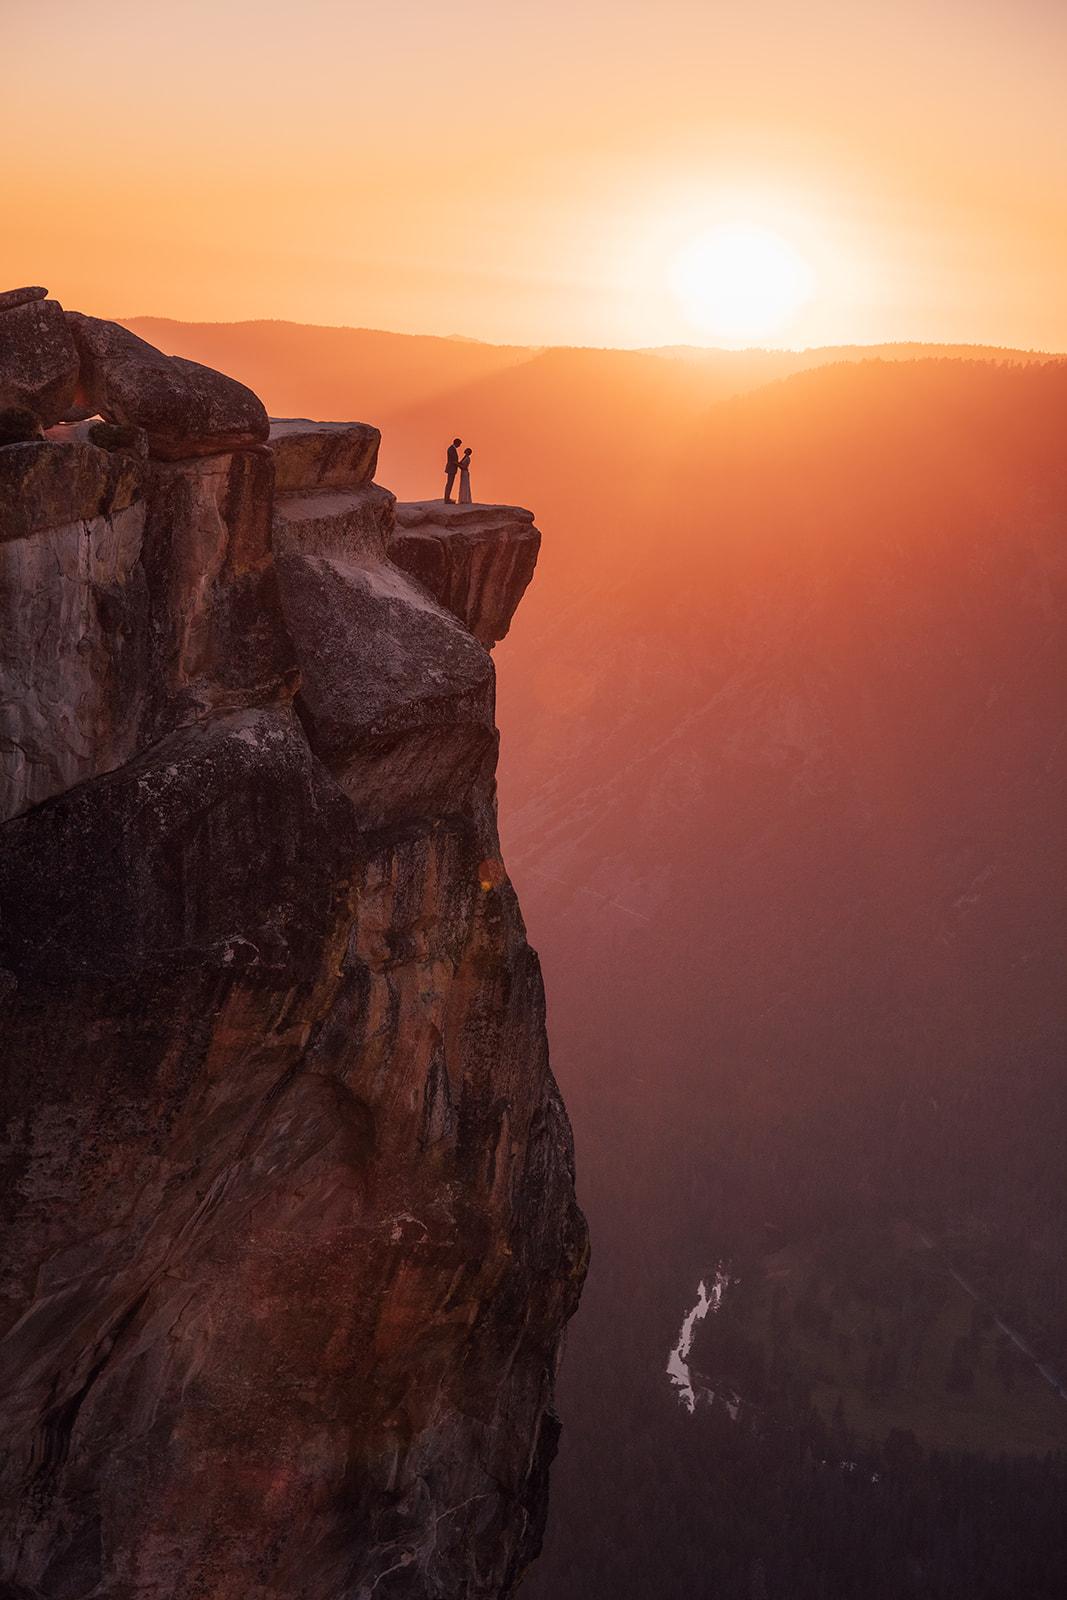 sunset-wedding-adventure-california-yosemite